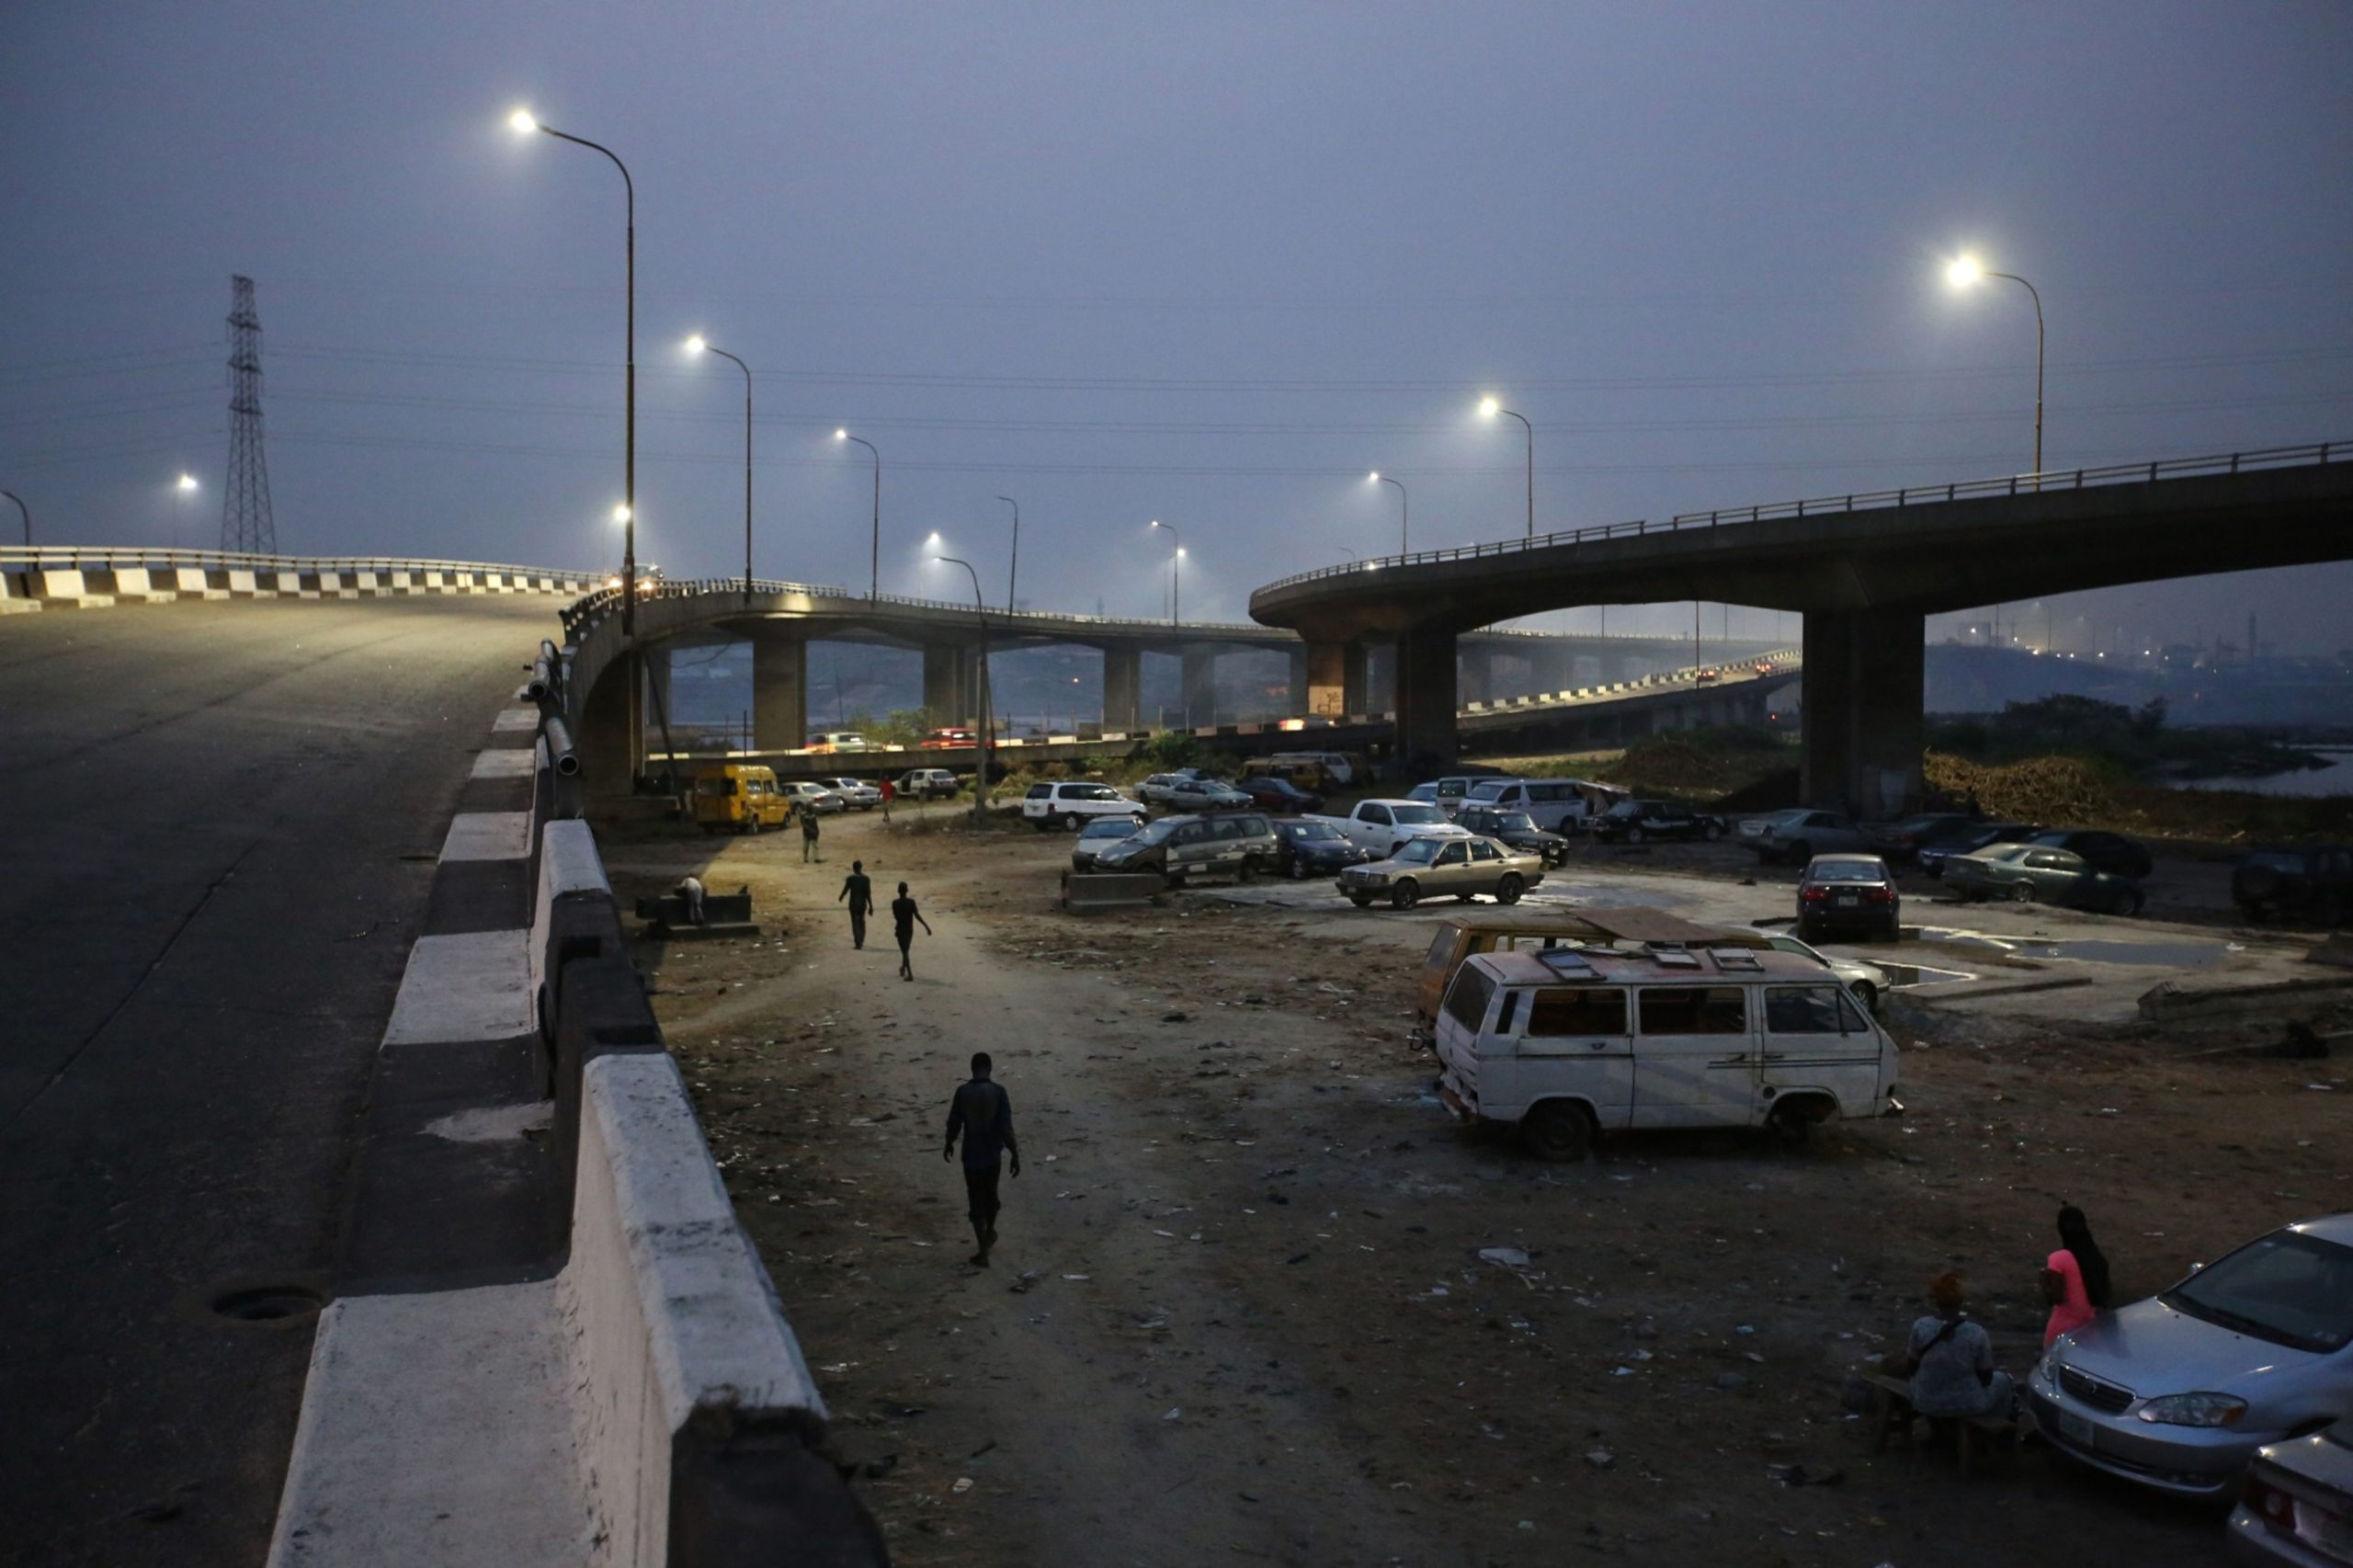 Night scene in Lagos with streetlights and roads